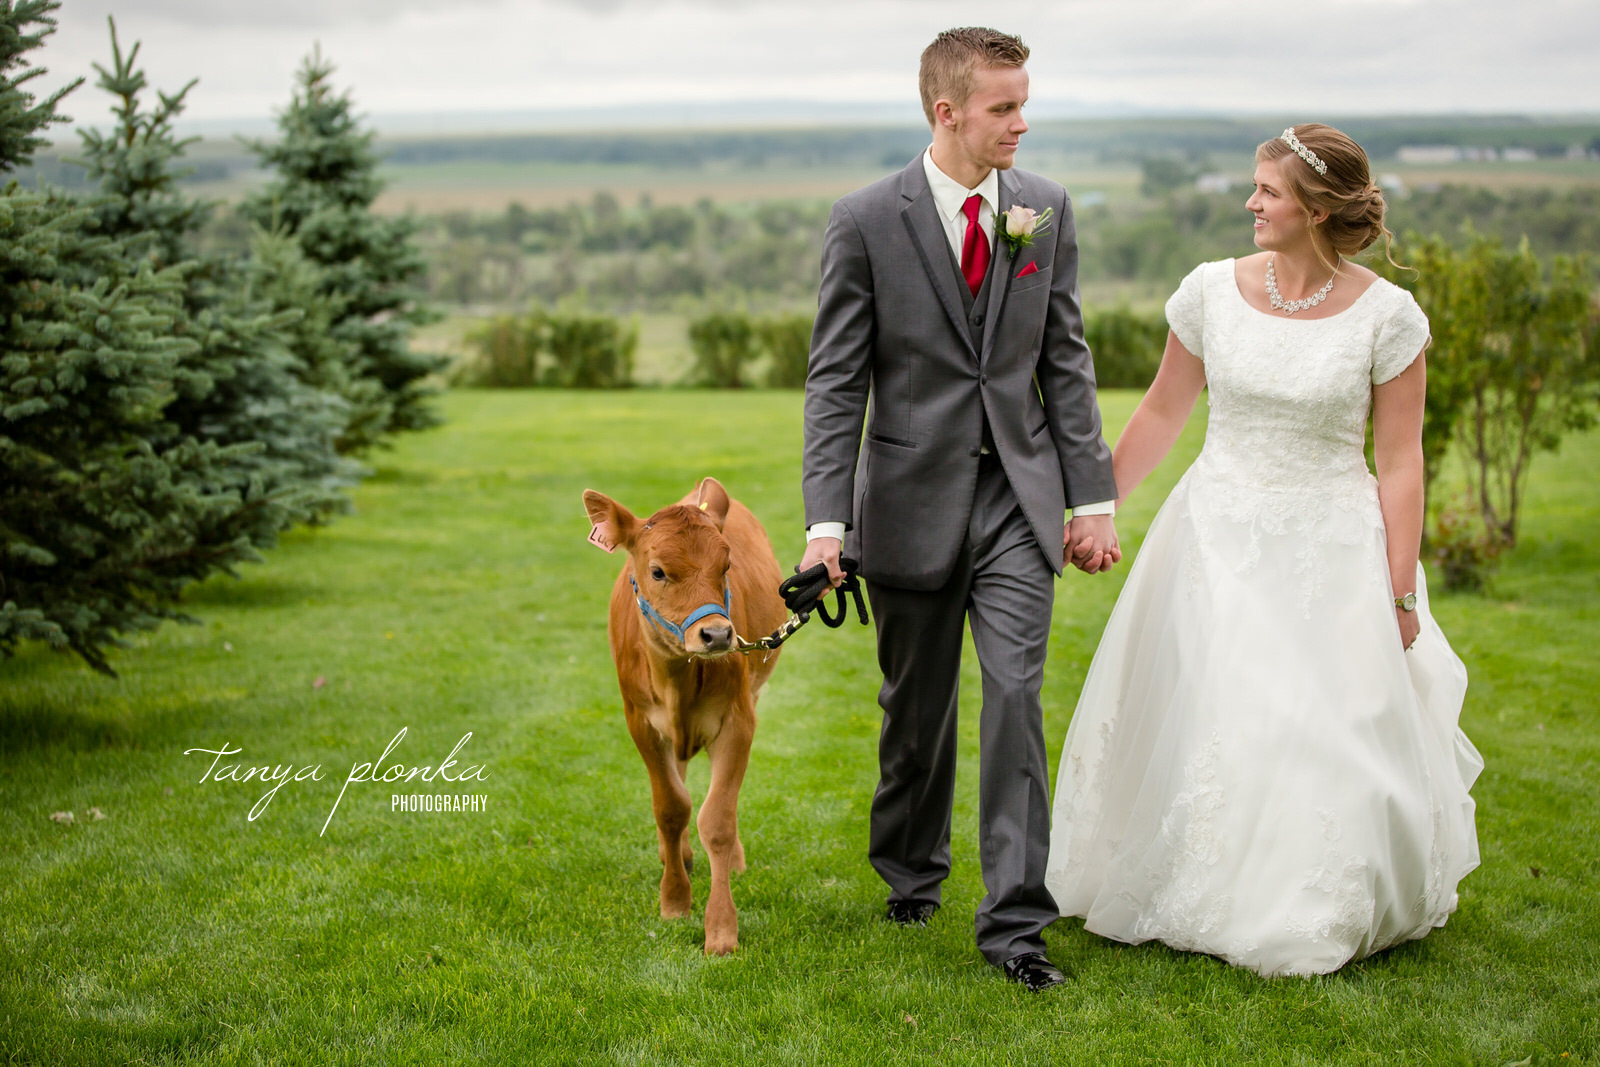 bride and groom walking while looking at each other with a small cow on a leash